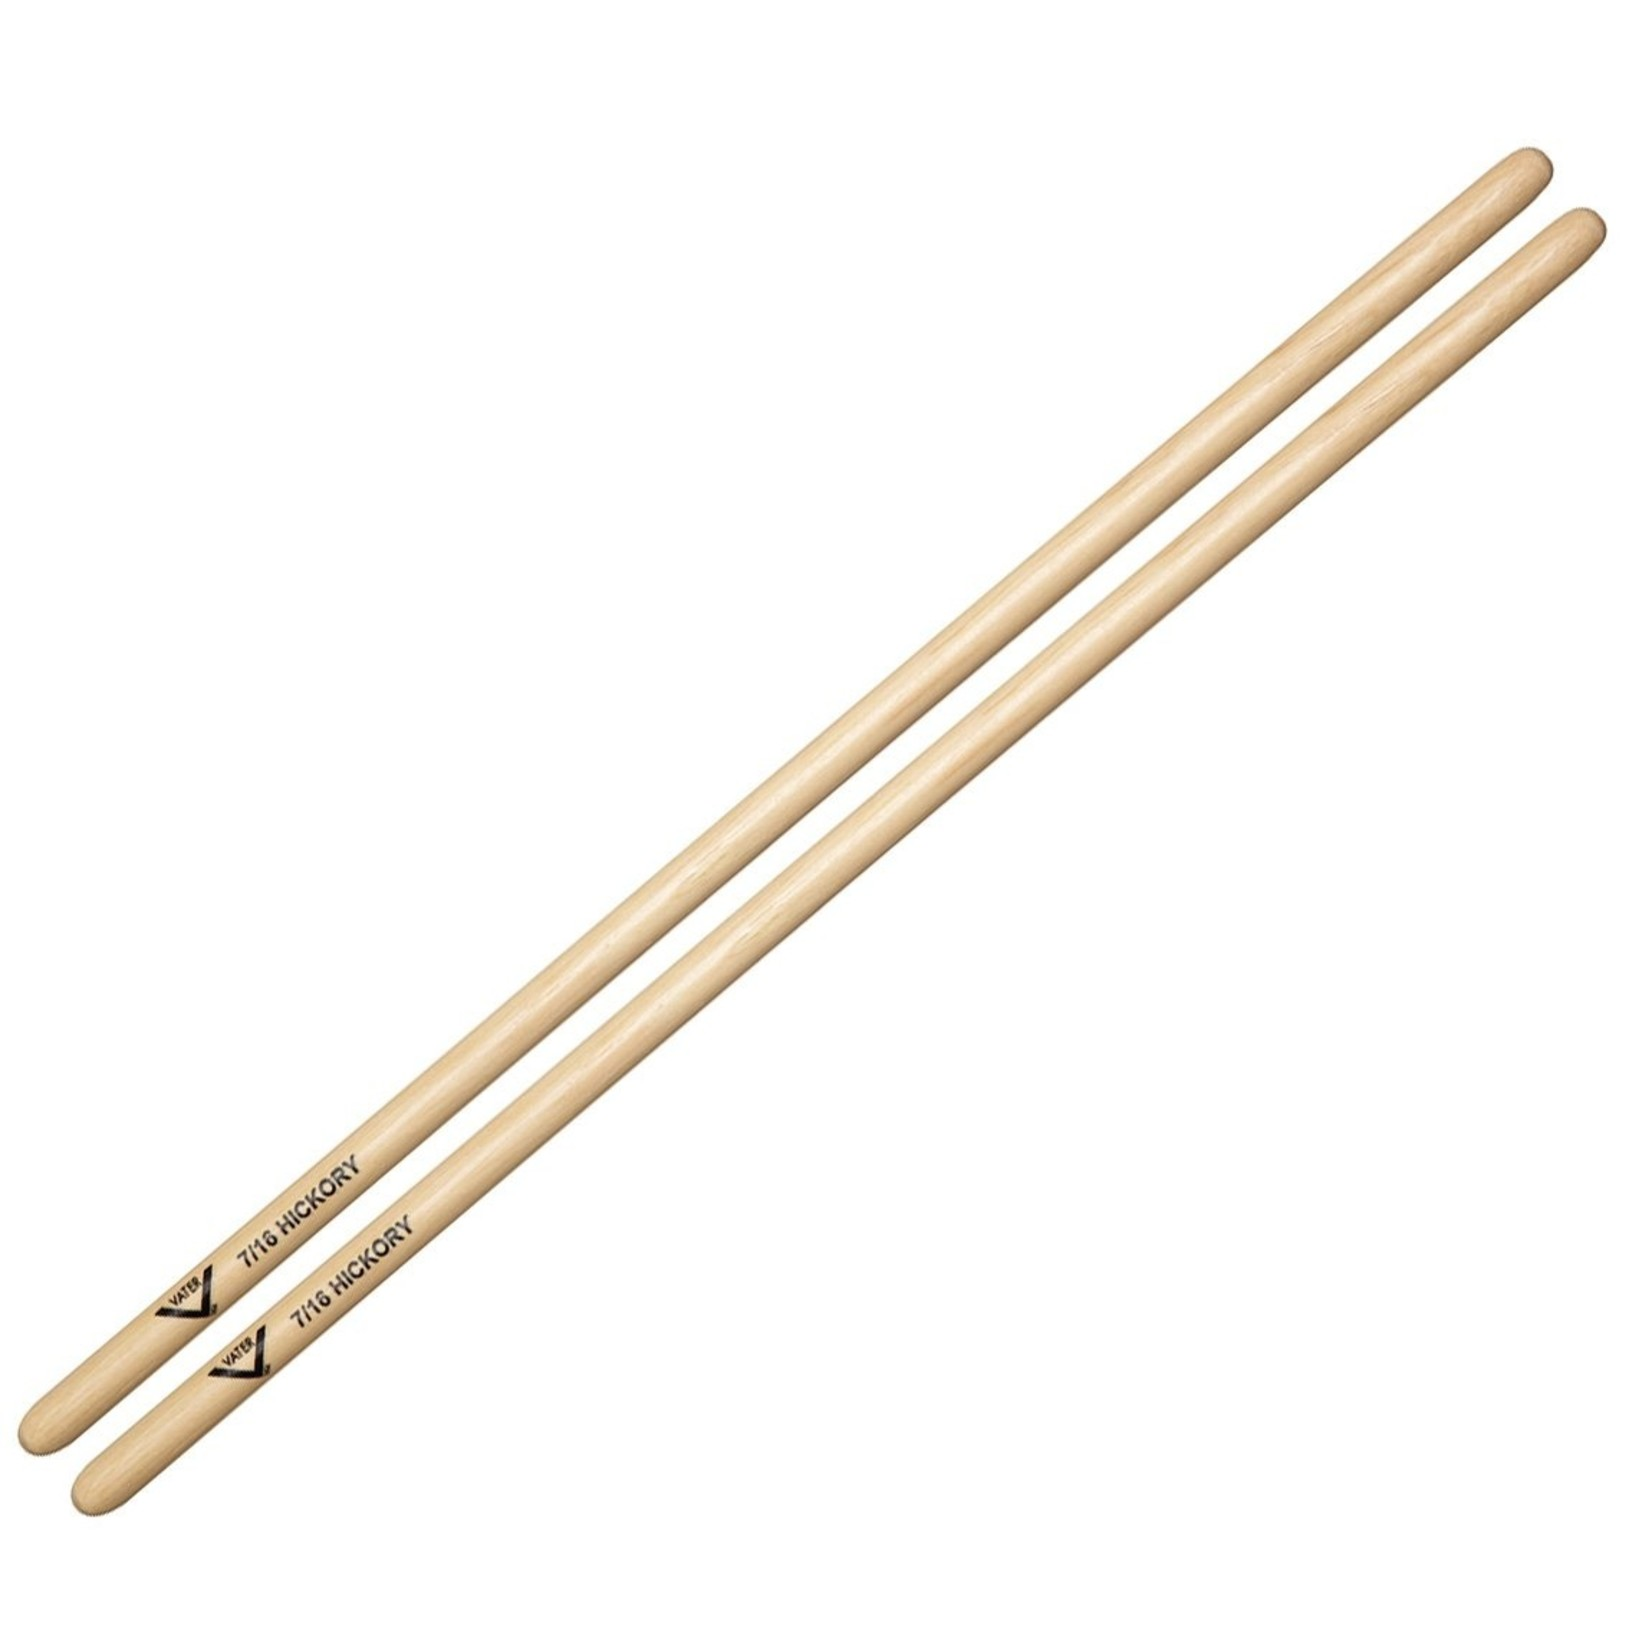 Vater Vater 7/16 Hickory Timbale